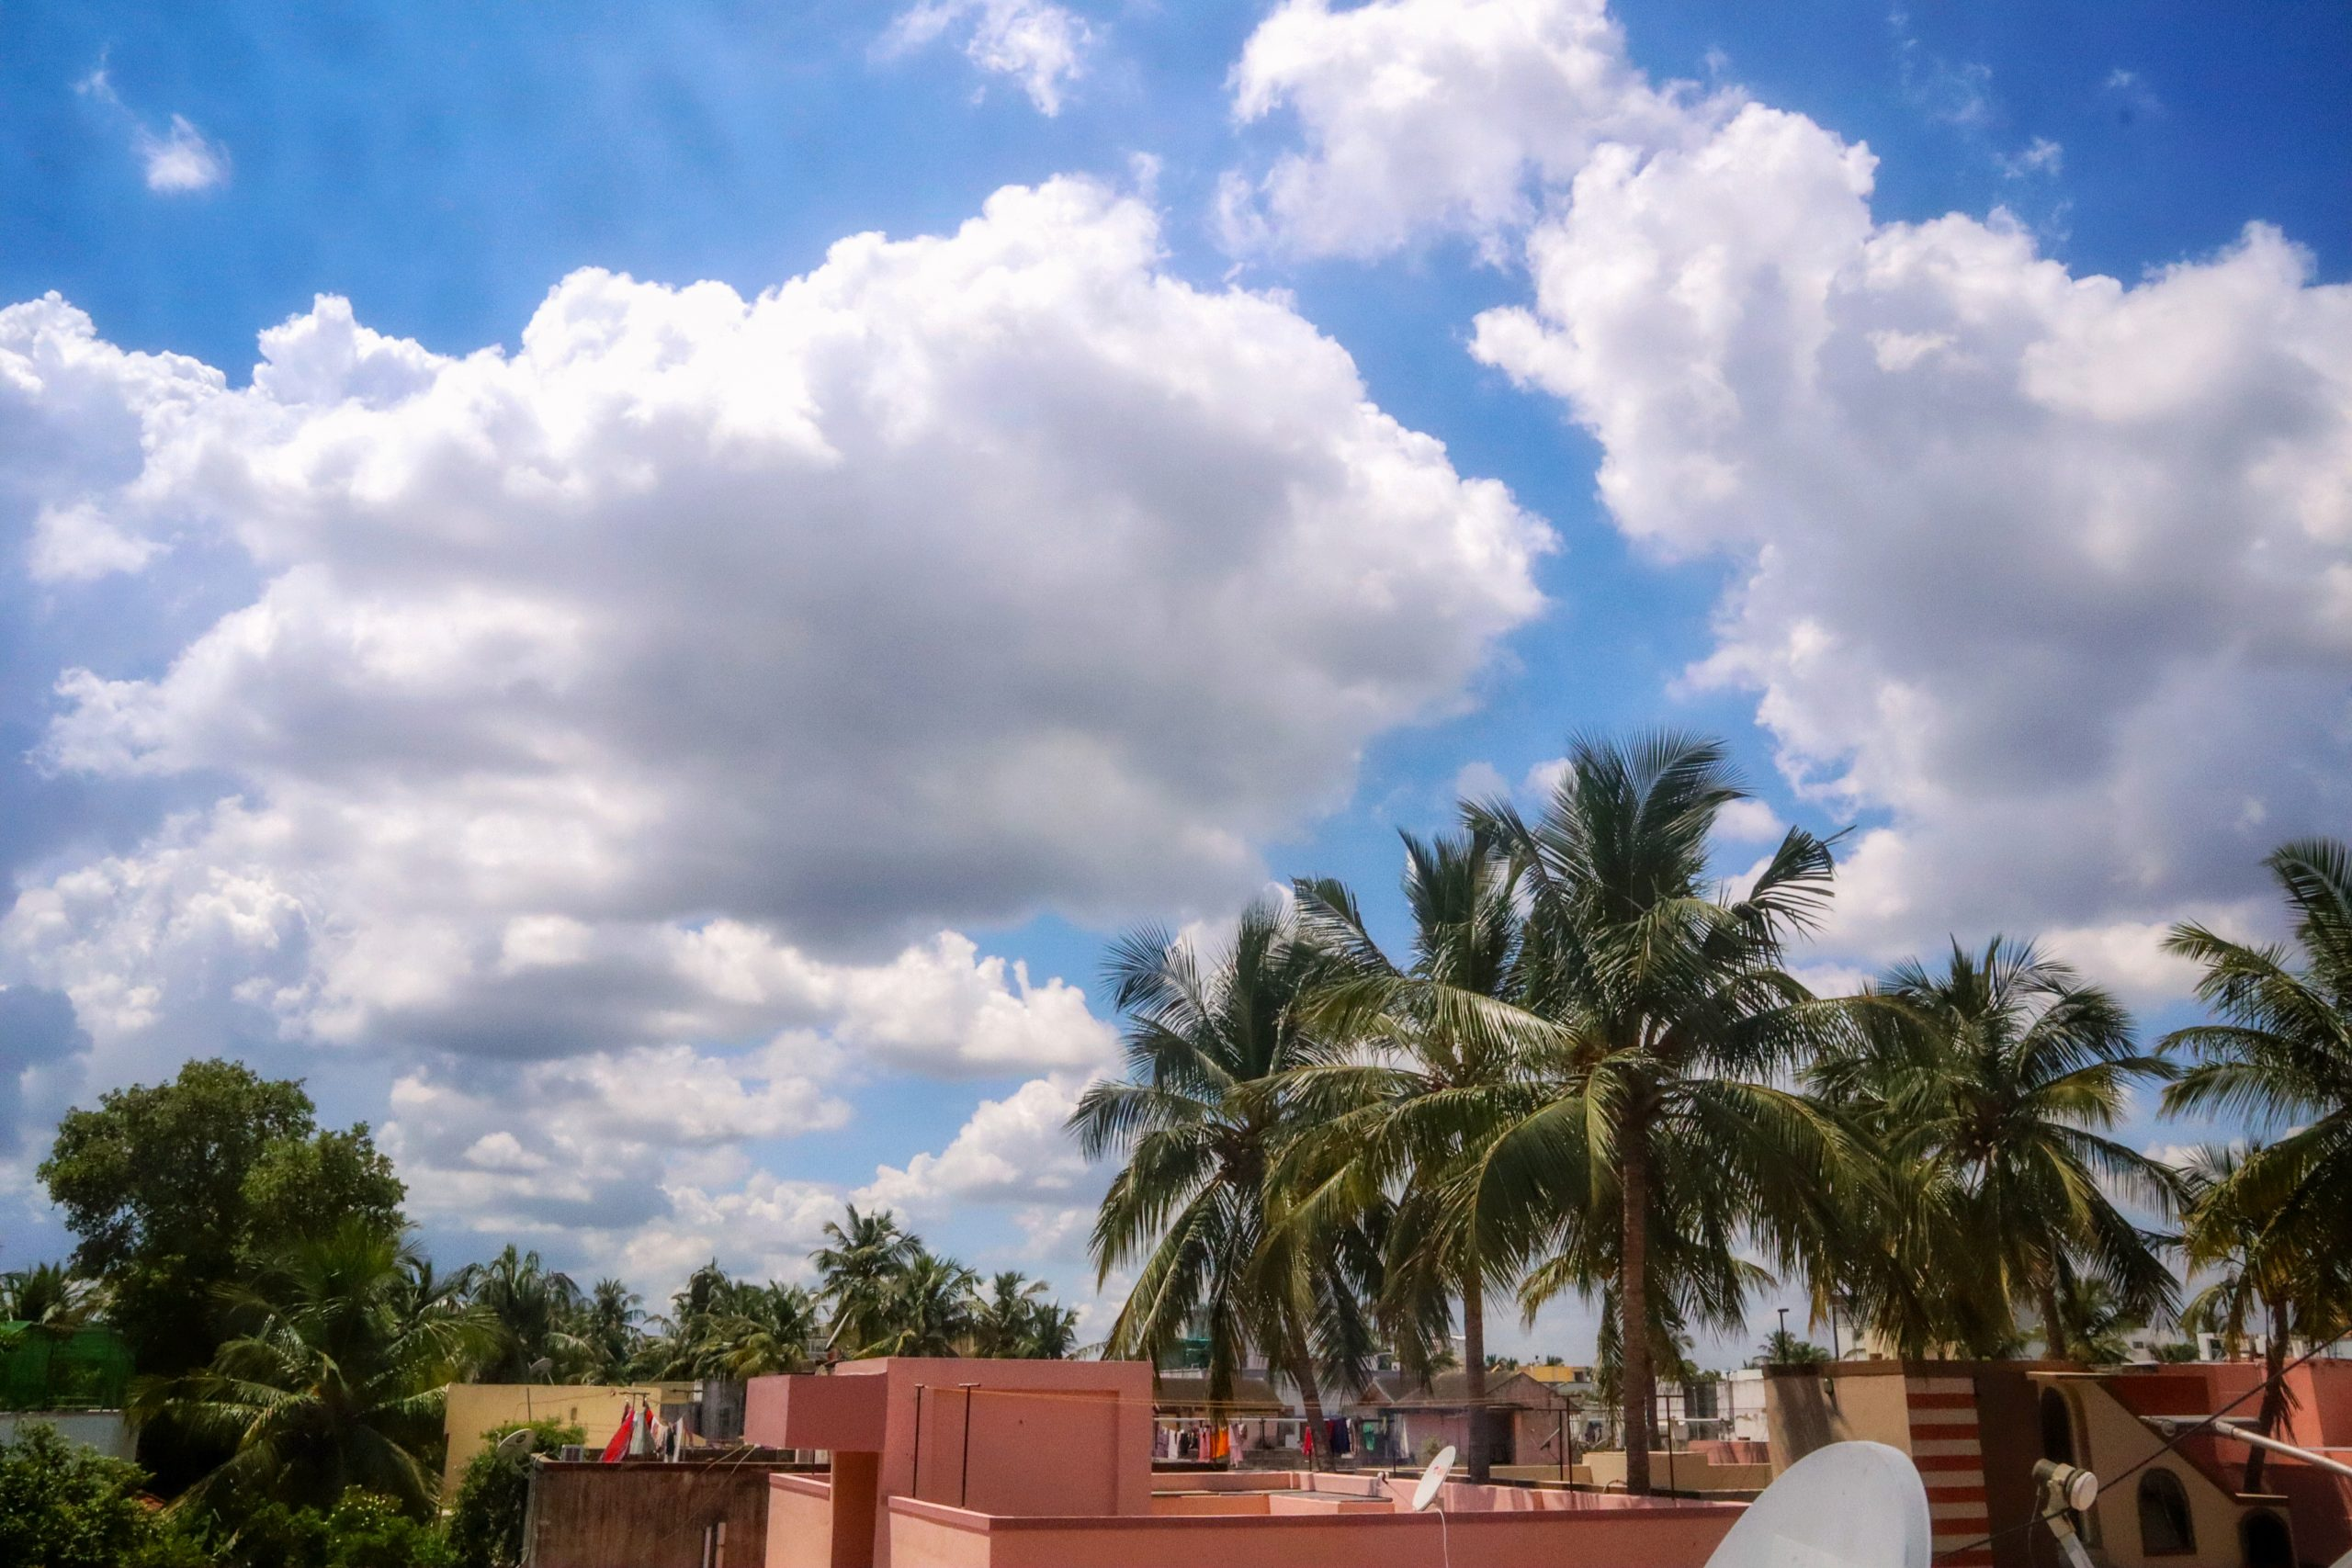 Rooftops and palm trees